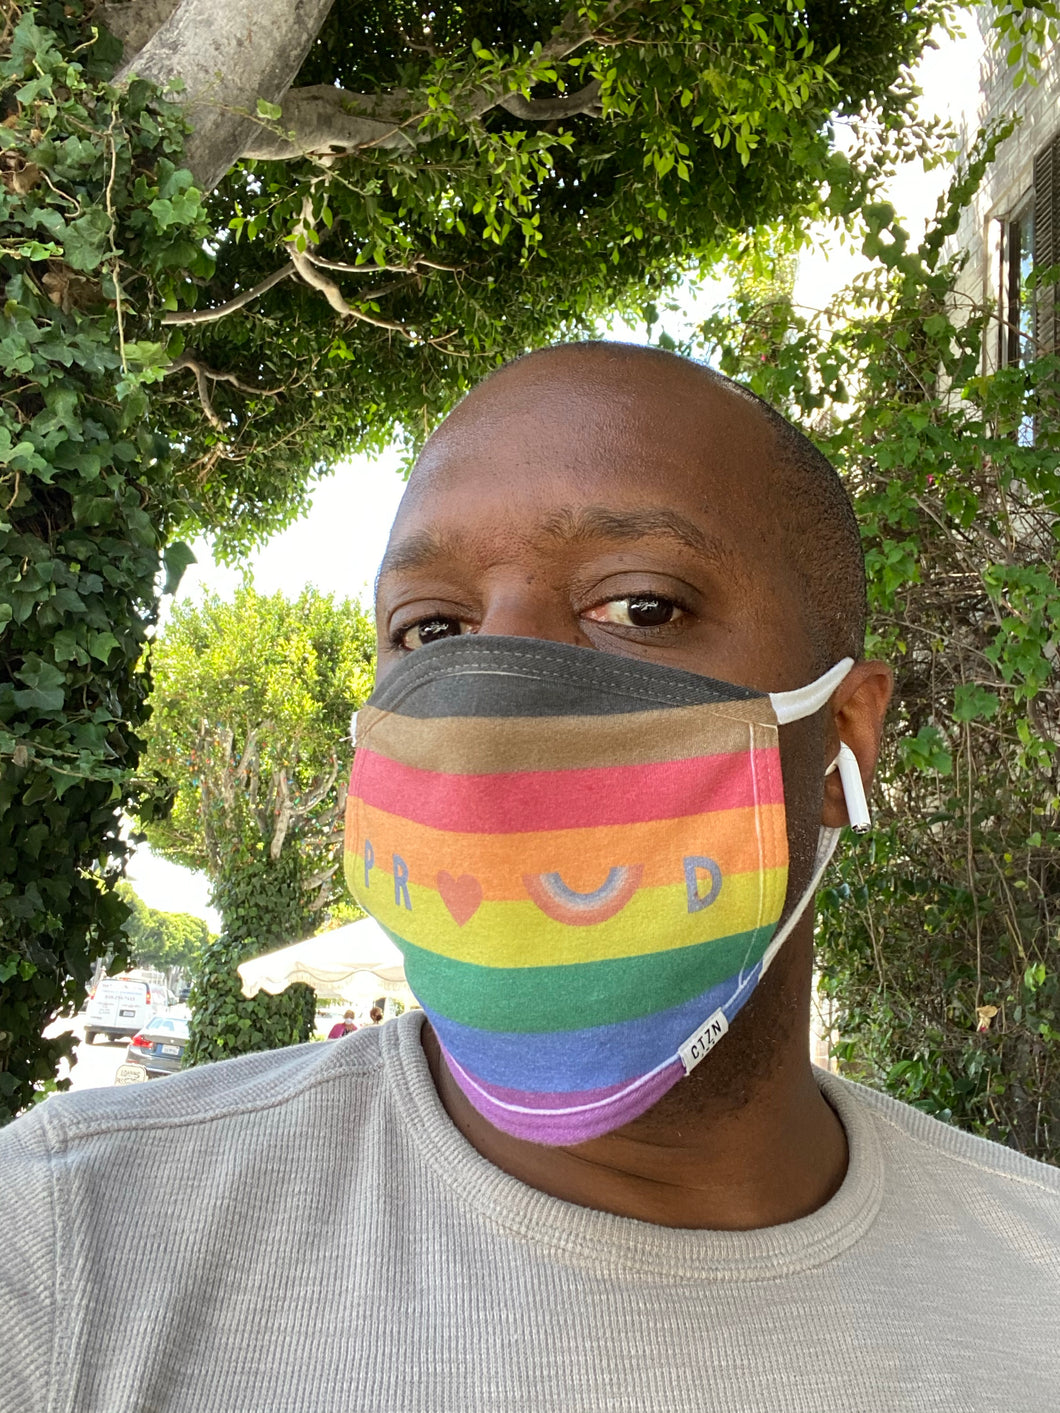 PROUD by CTZN JNS Oval-Shaped Philly Pride Face Mask